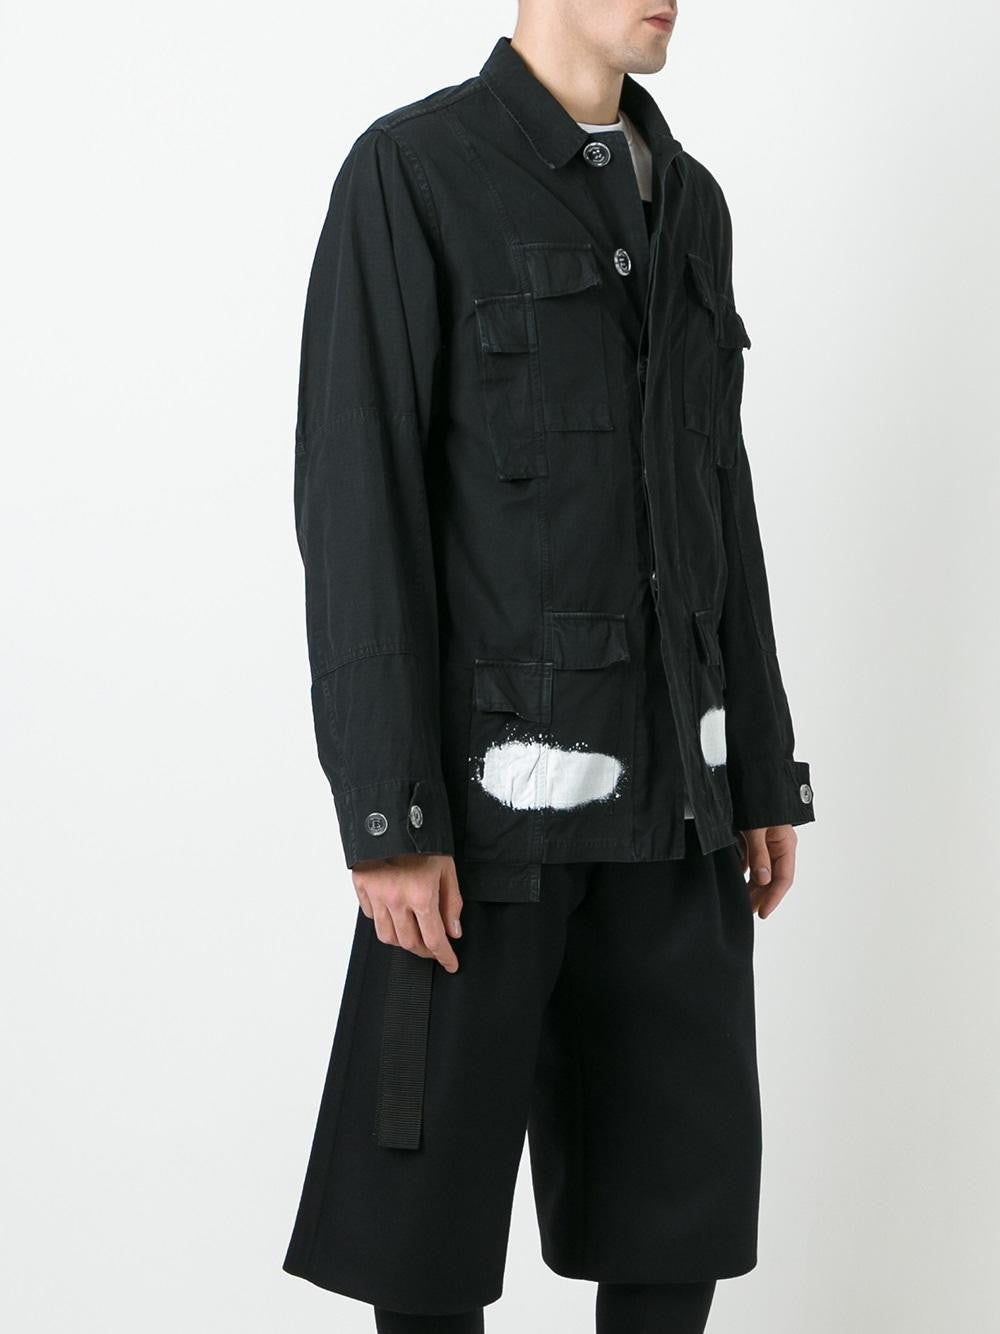 Deconstructed Field Jacket | OMEA069S17026013 DIAGSPRYFLD